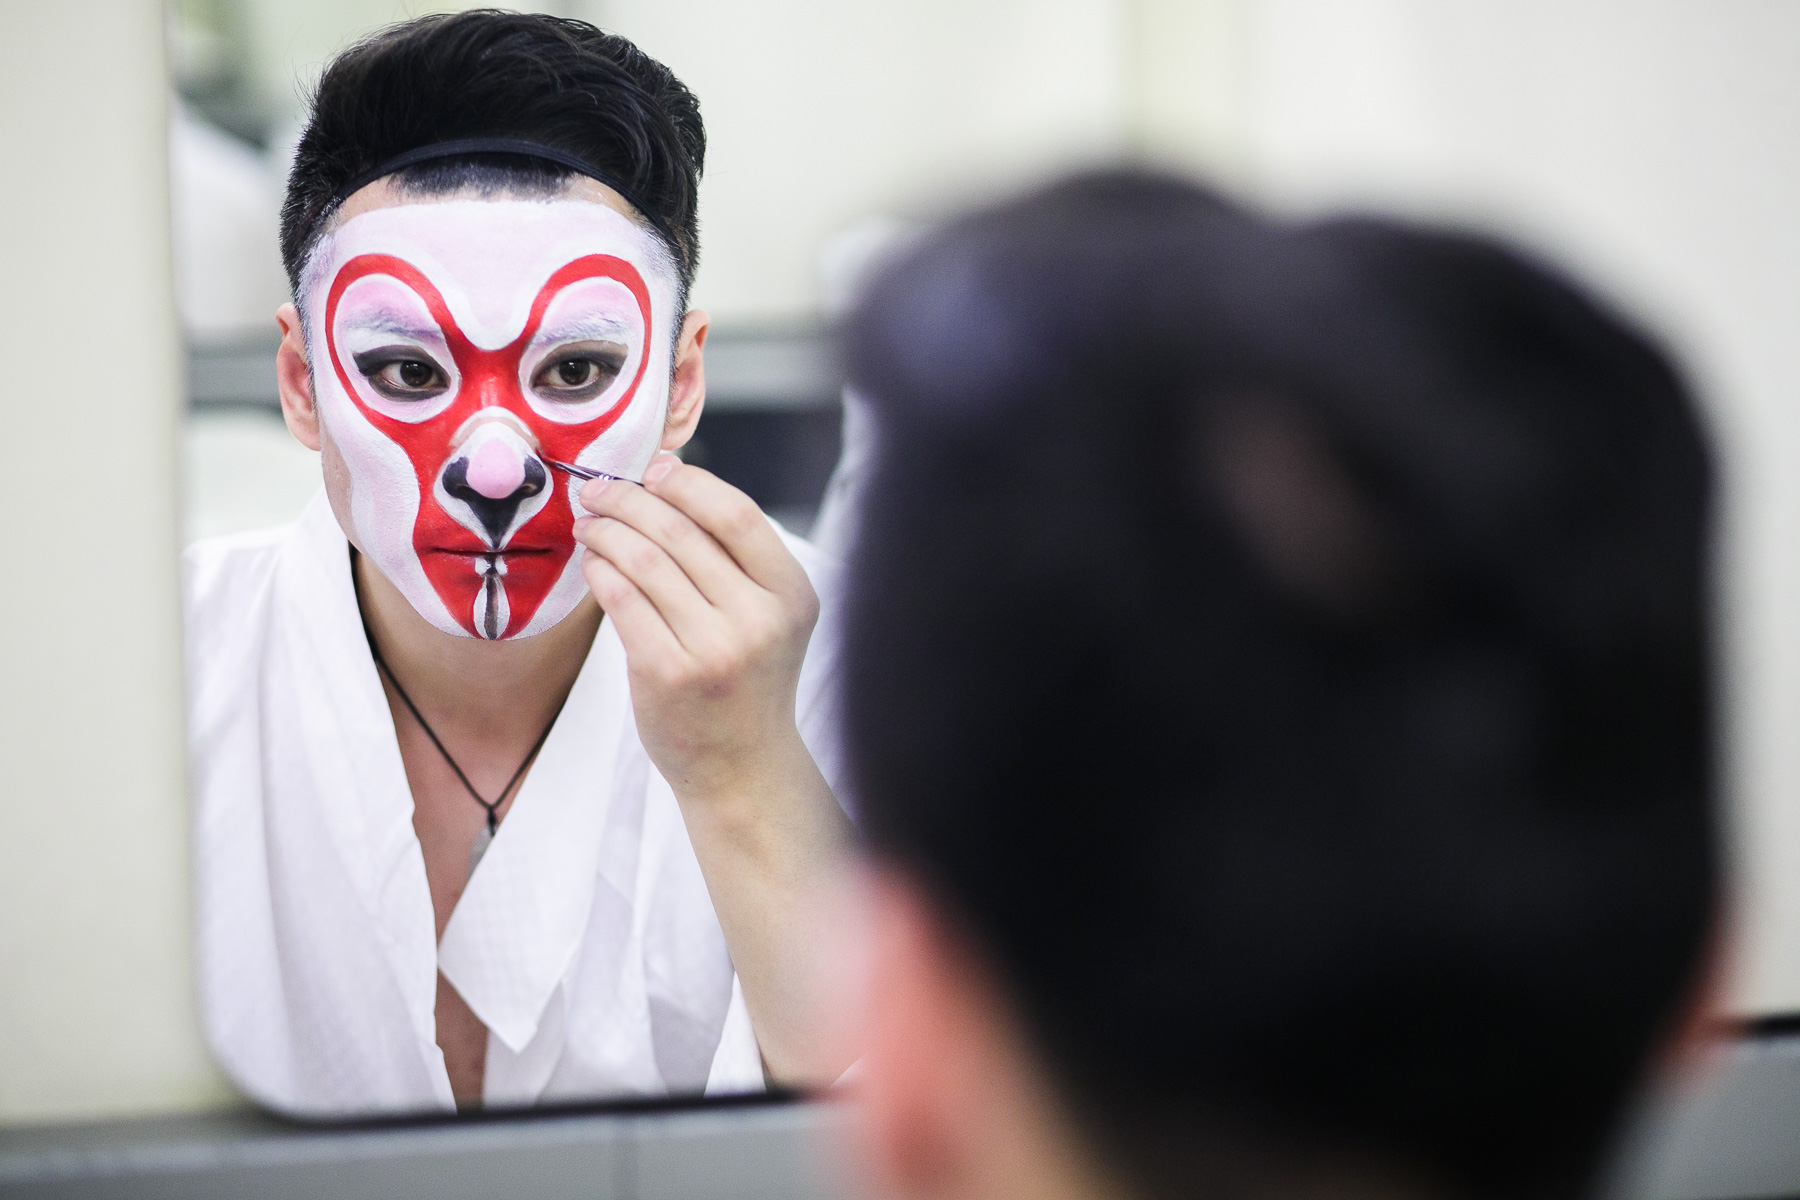 Wang Lu who plays the Monkey King puts on makeup before the China National Peking Opera Company performance of the Monkey King in Cankarjev dom Culture and Congress Center in Ljubljana, Slovenia, Dec. 31, 2015.